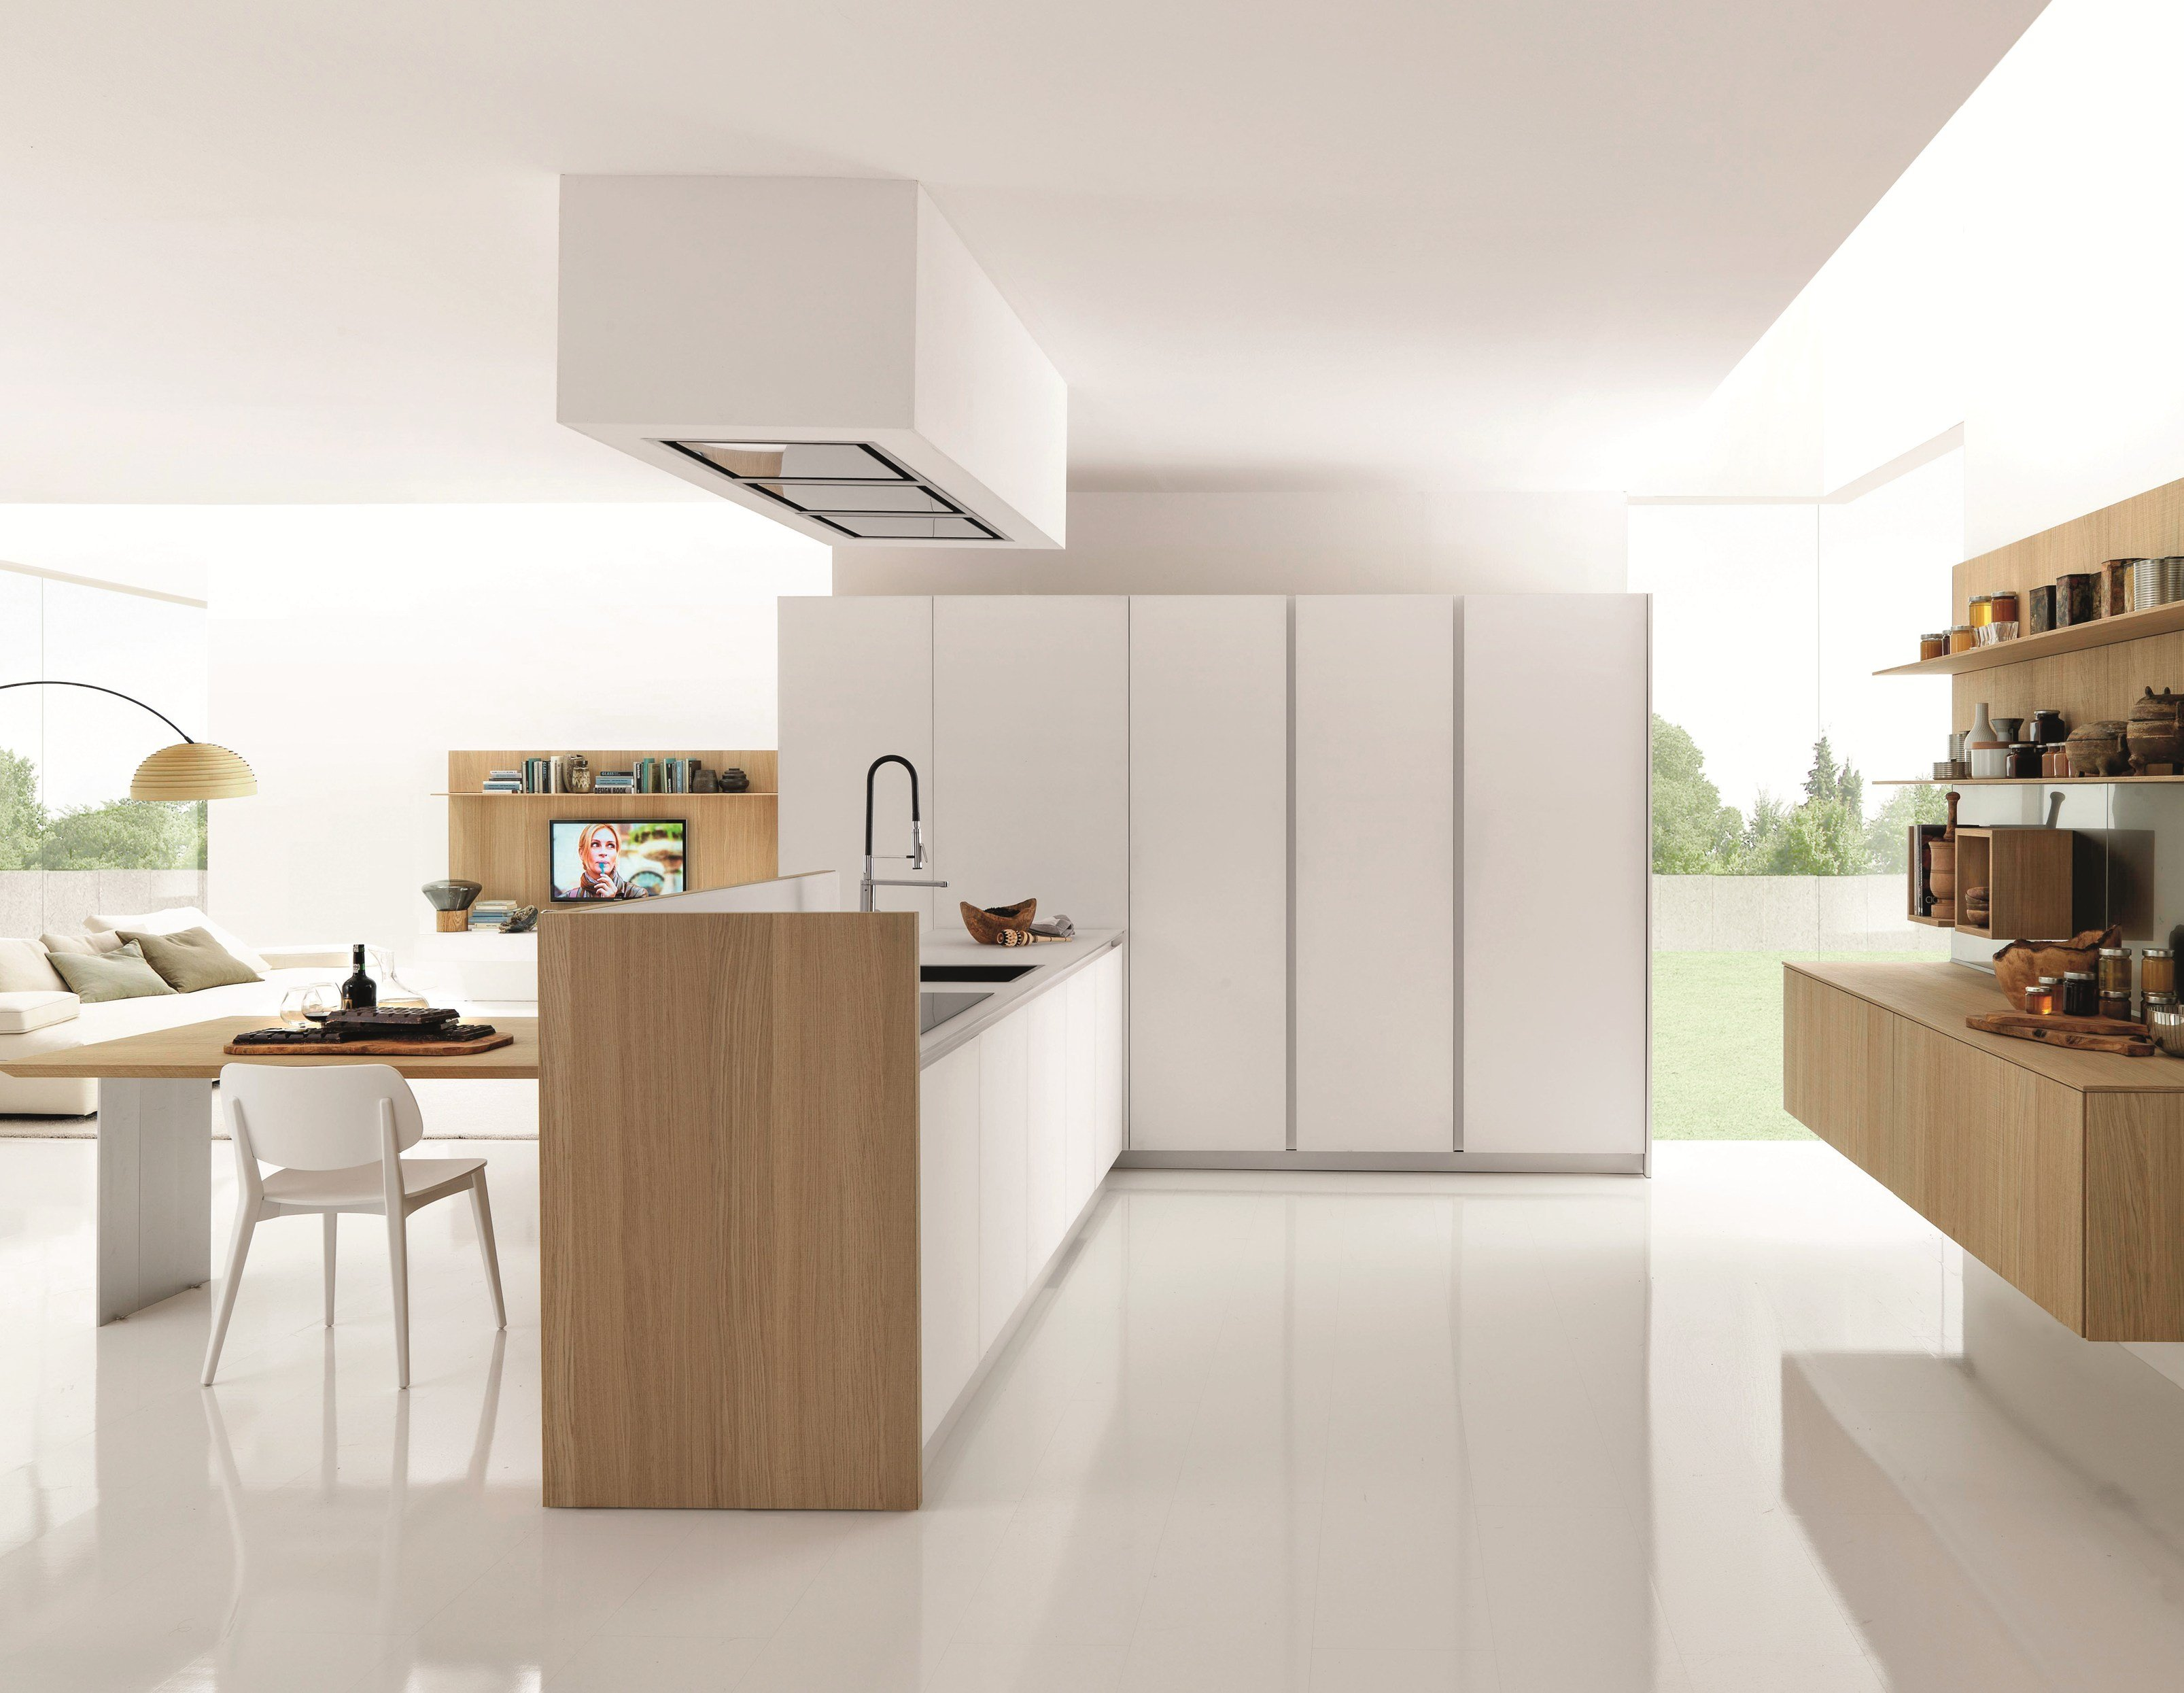 wooden fitted kitchen kubic 3 by euromobil design roberto gobbo - Cucina Euromobil